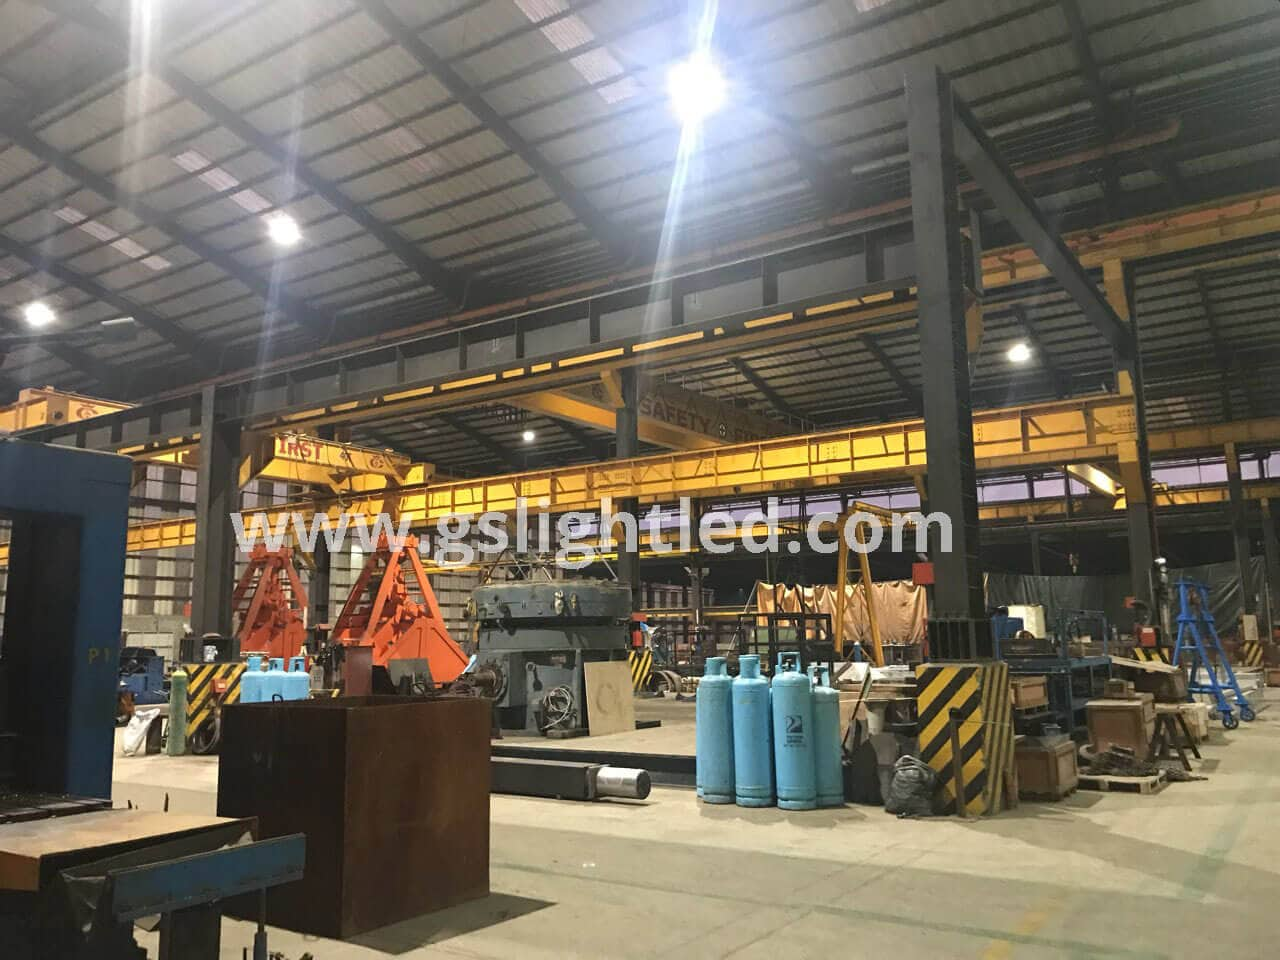 GS LIGHT UFO LED High Bay Light Project in Philippines